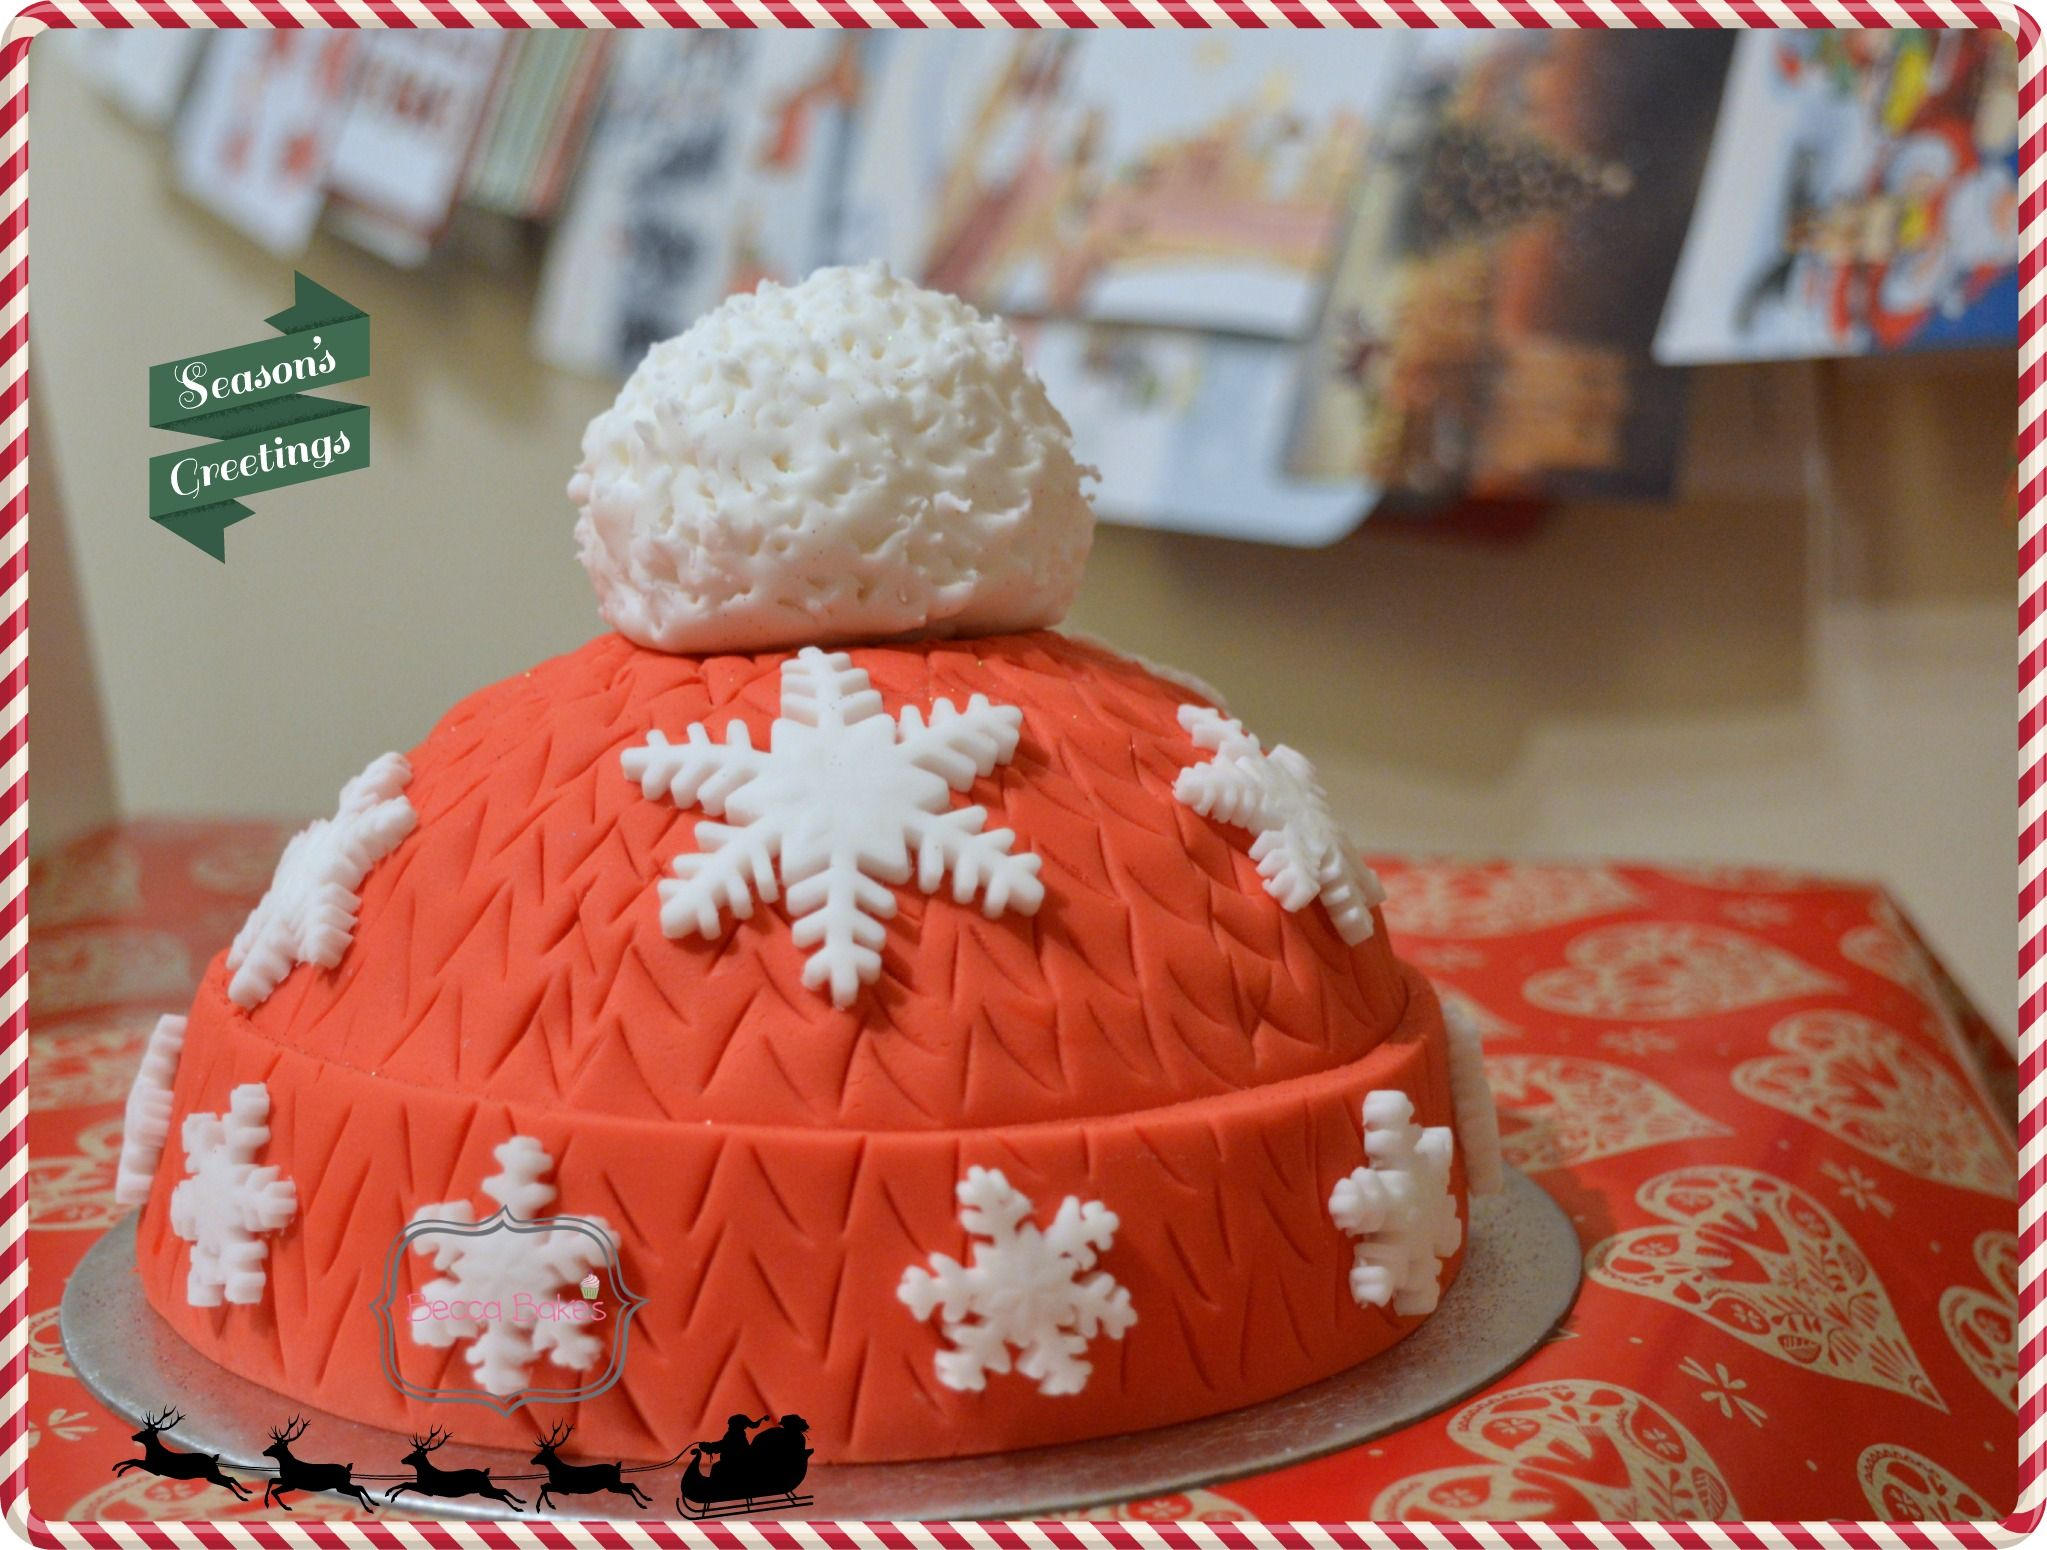 Woolly hat sponge cake, baked by Becca Bakes using the